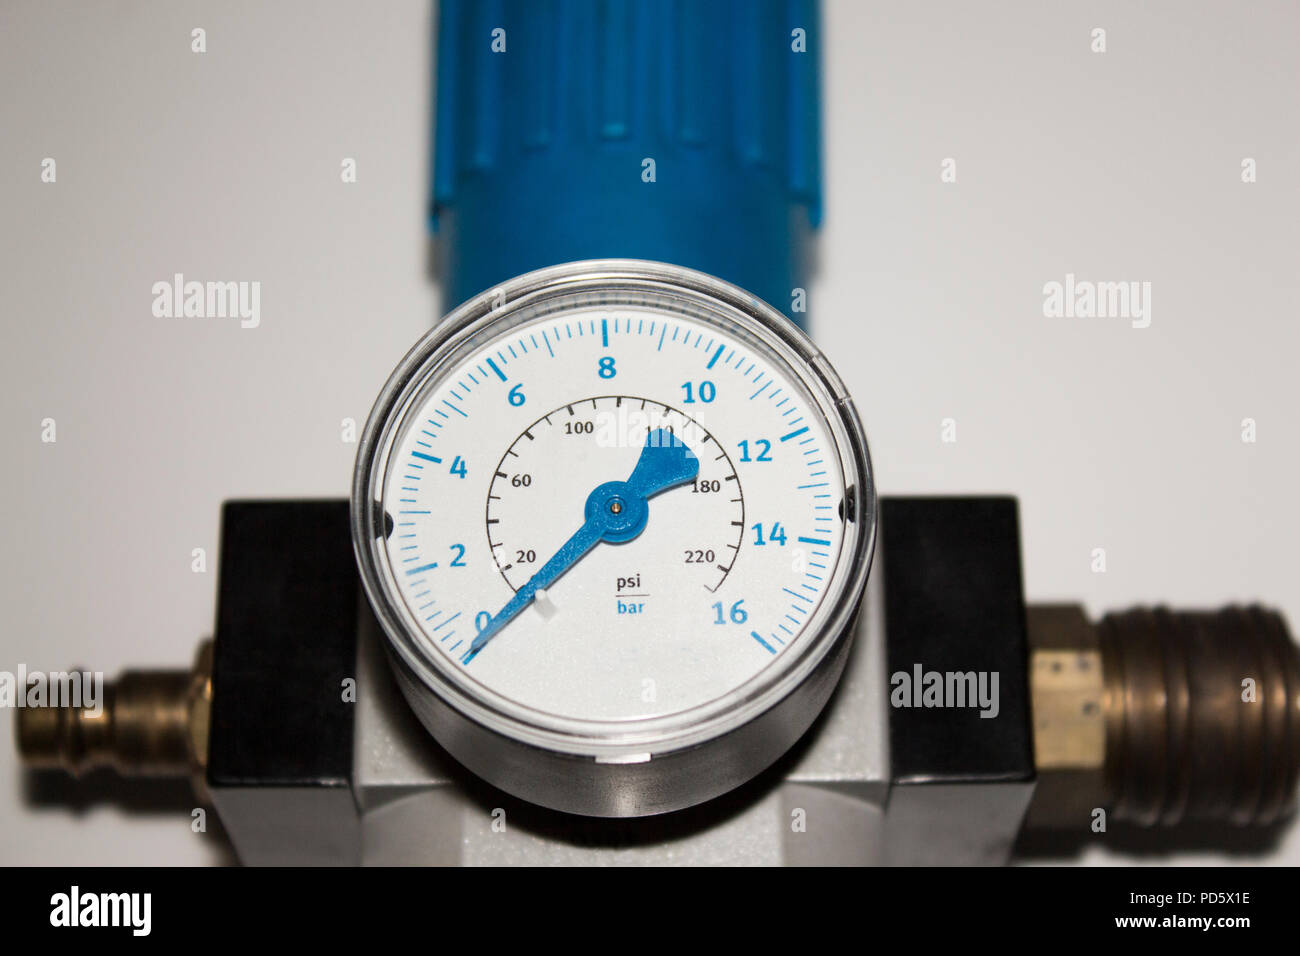 Machine part bar barometer pressure air metering scale with blue arrow in bar device isolated with white background machine - Stock Image